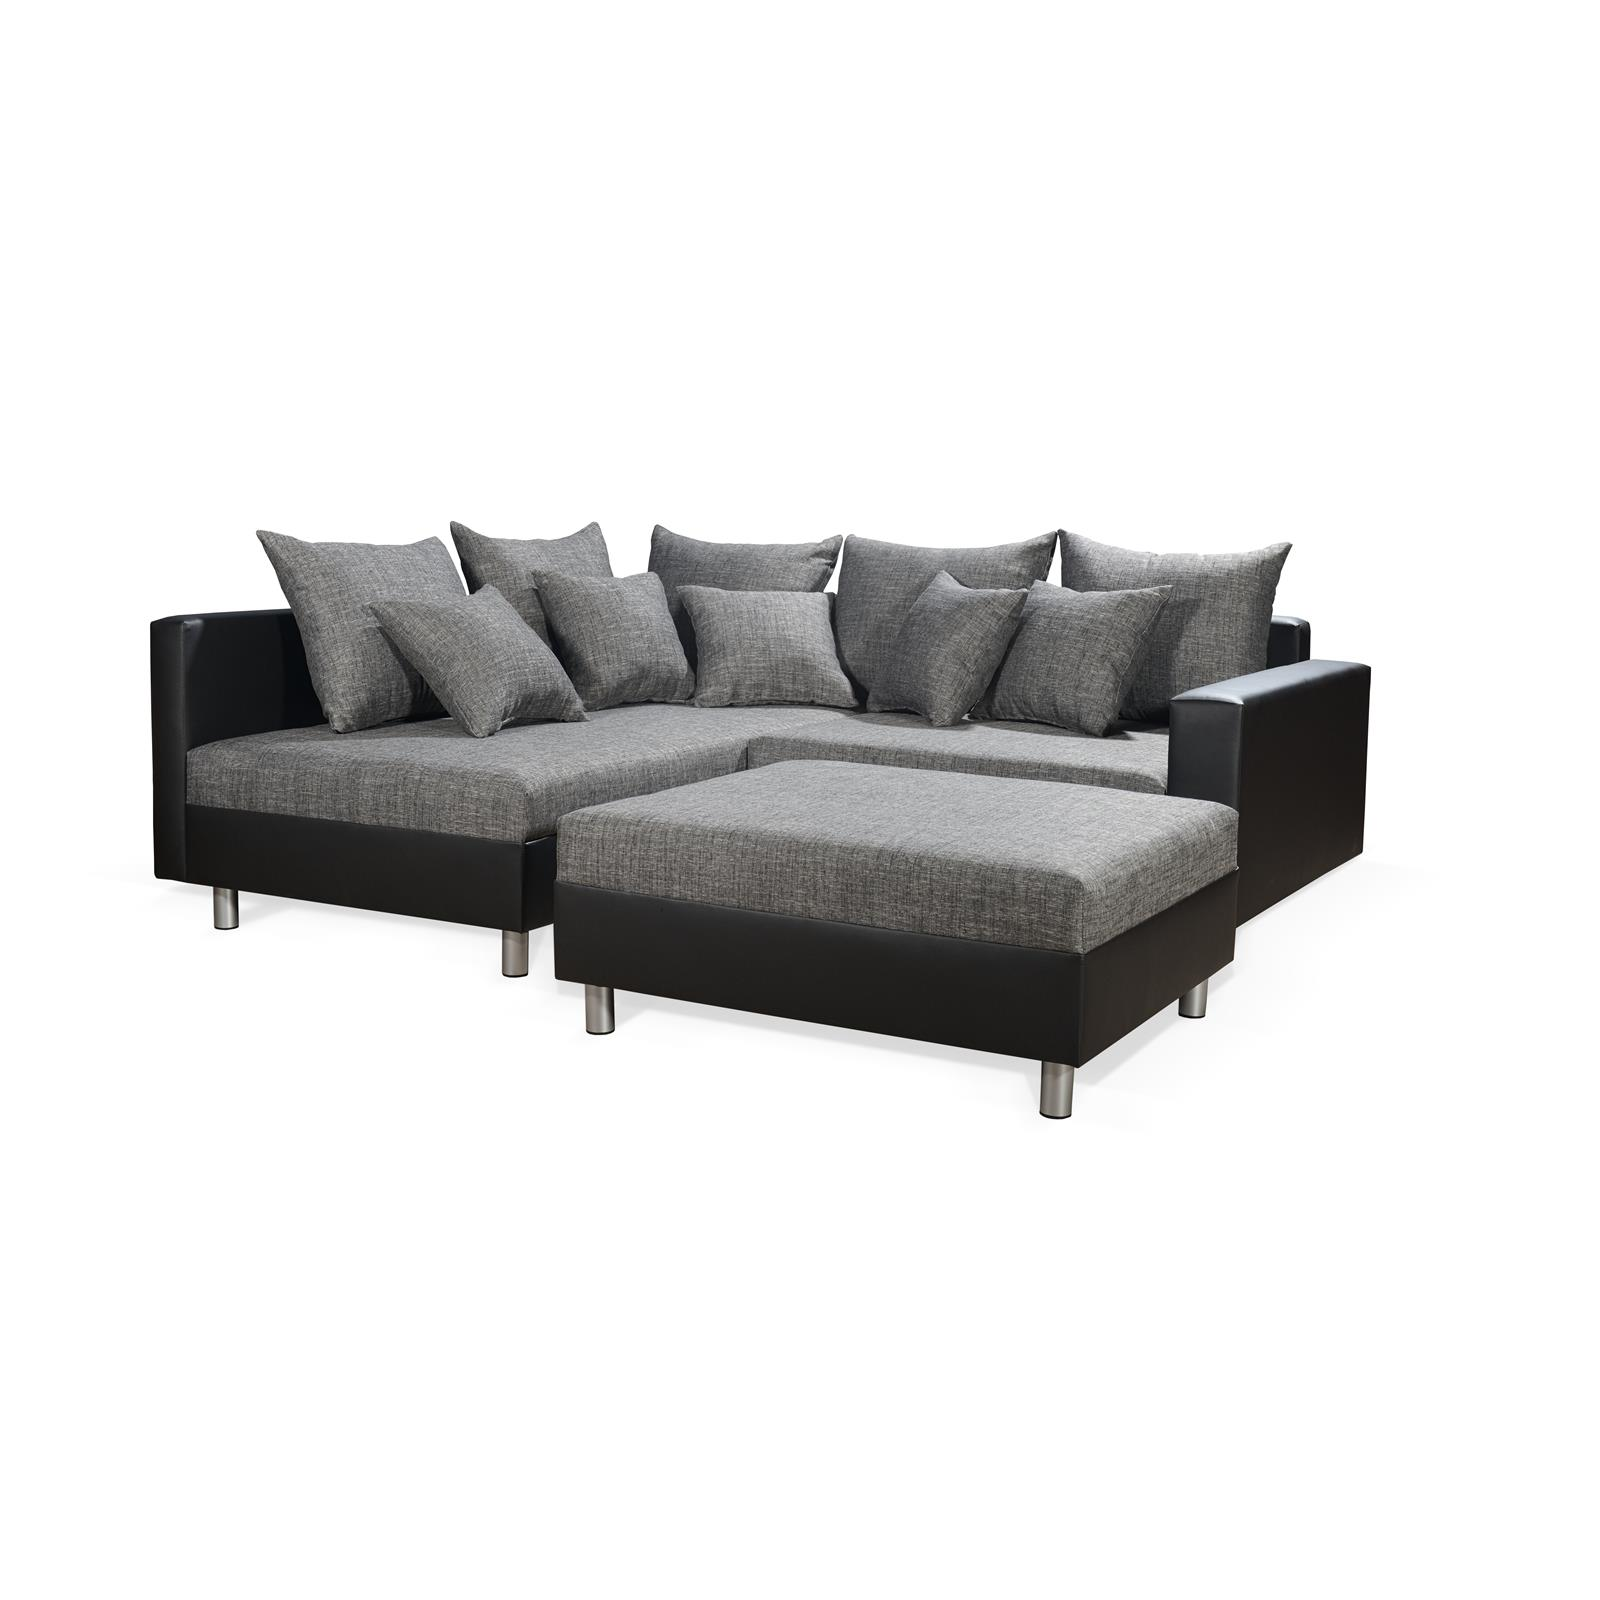 Big Sofa Leder Schwarz Carprola For